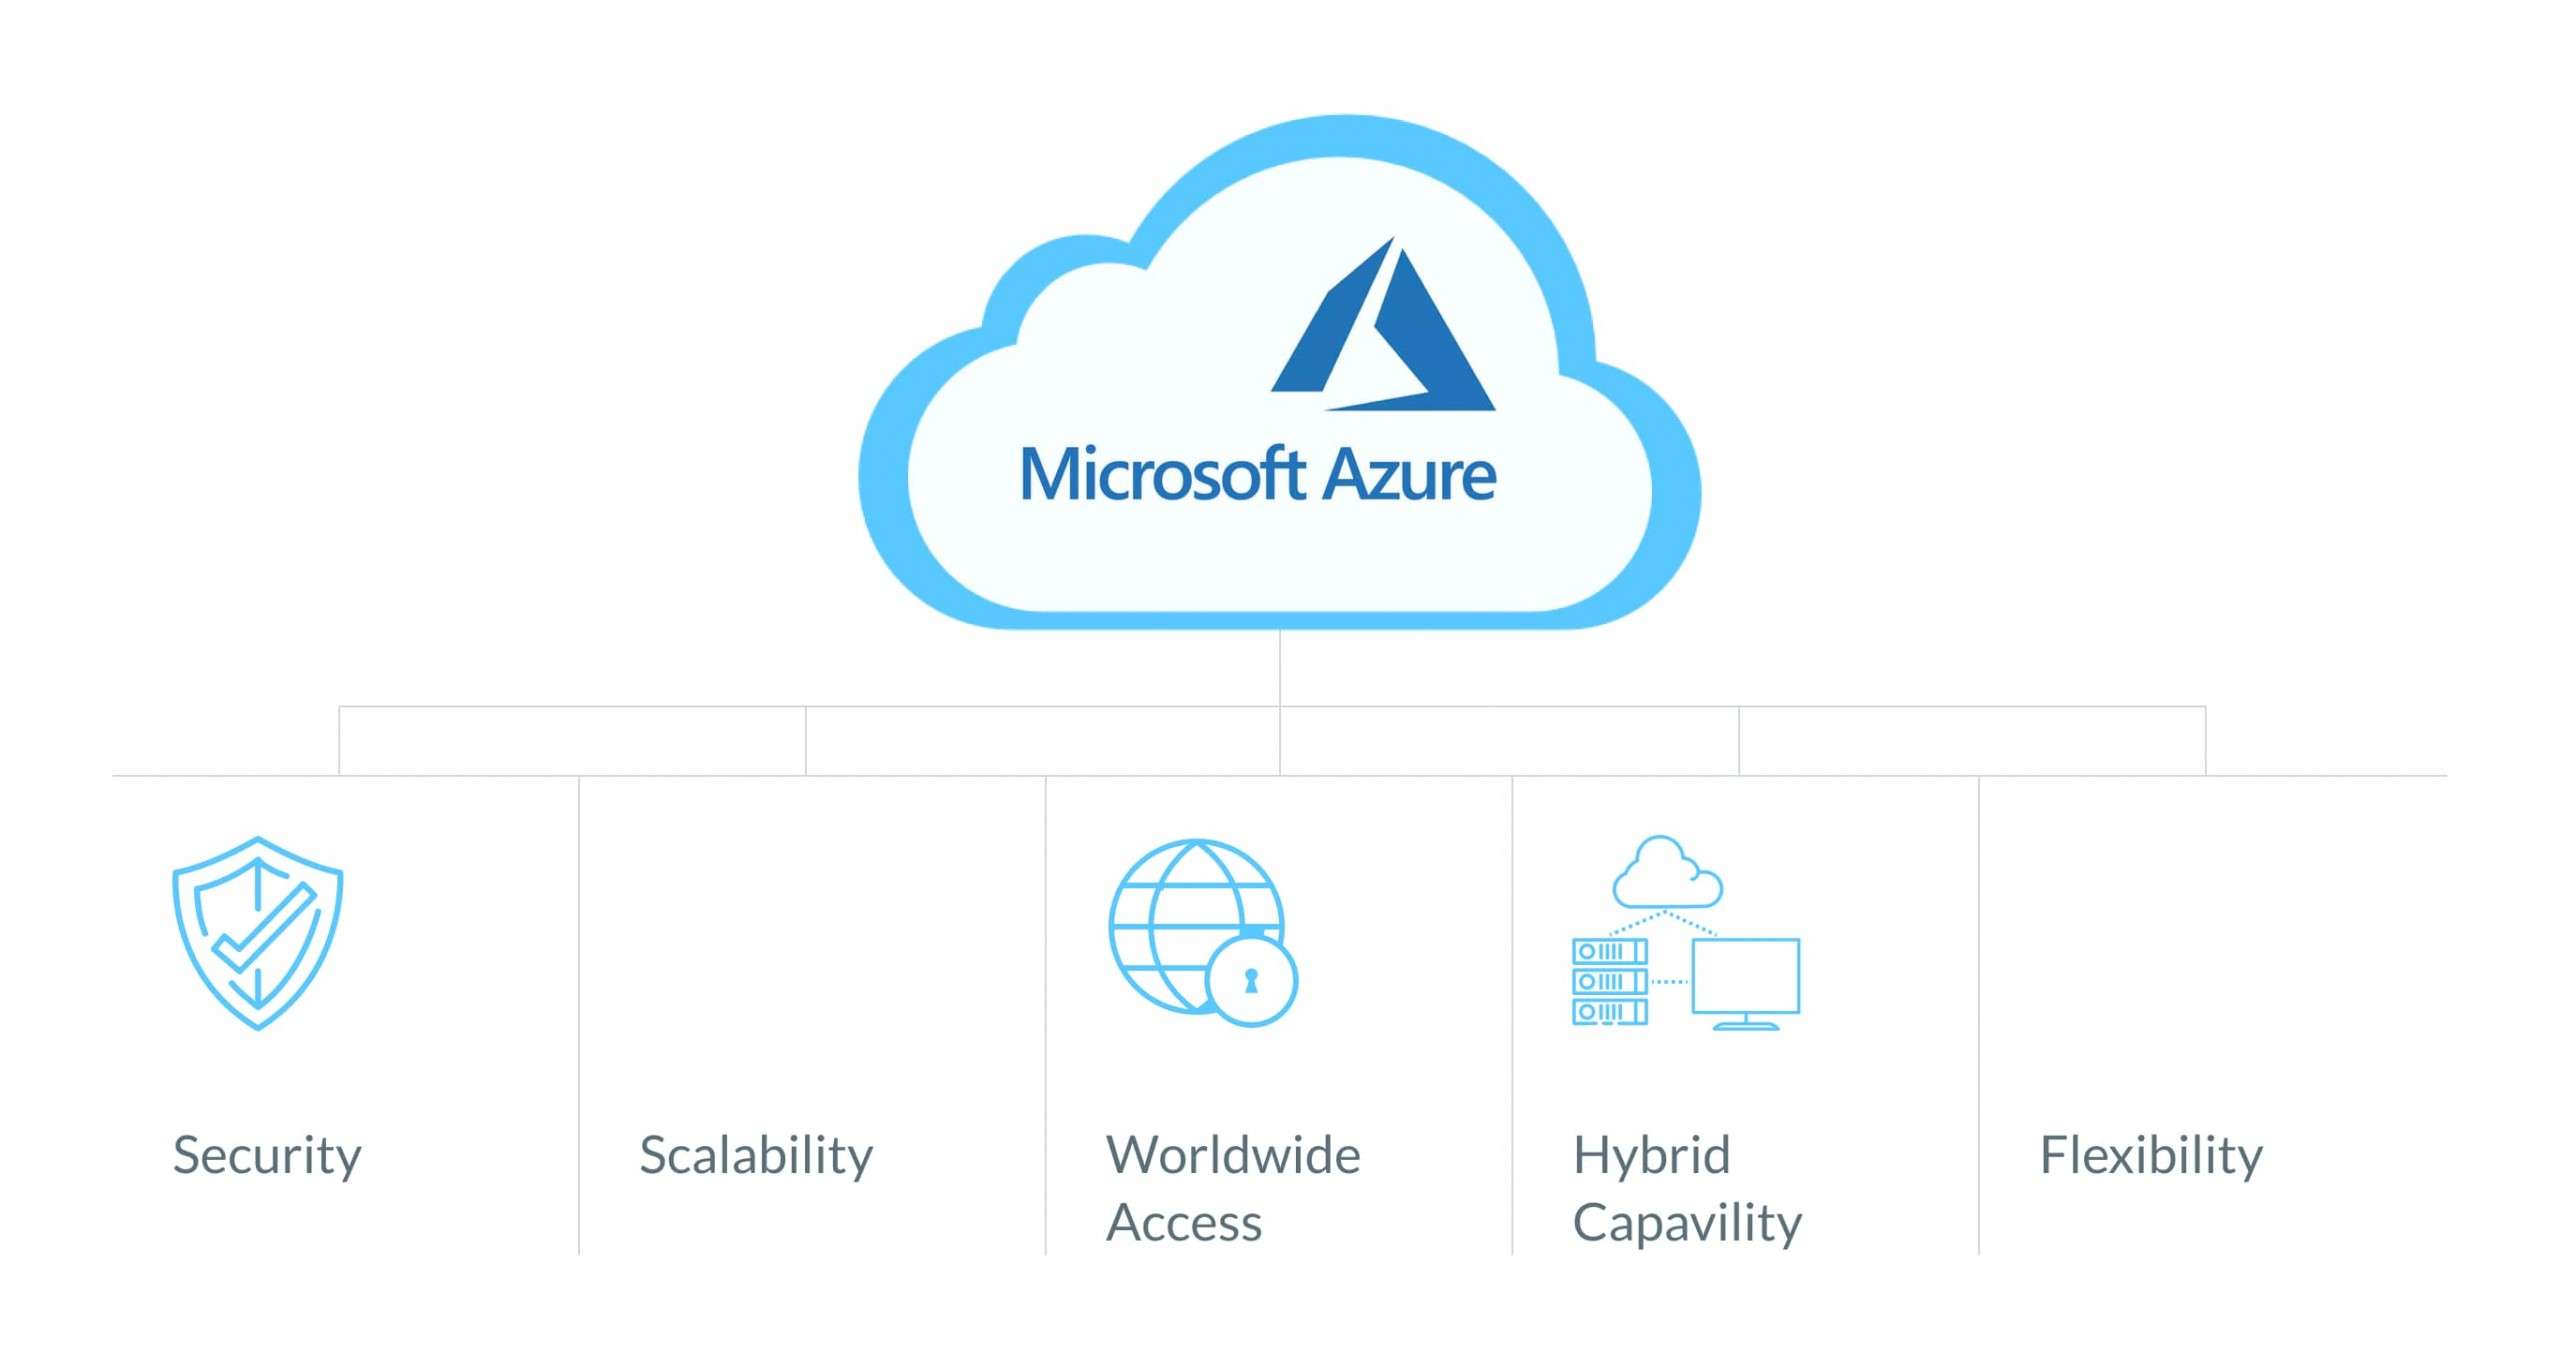 What is microsoft azure used for?